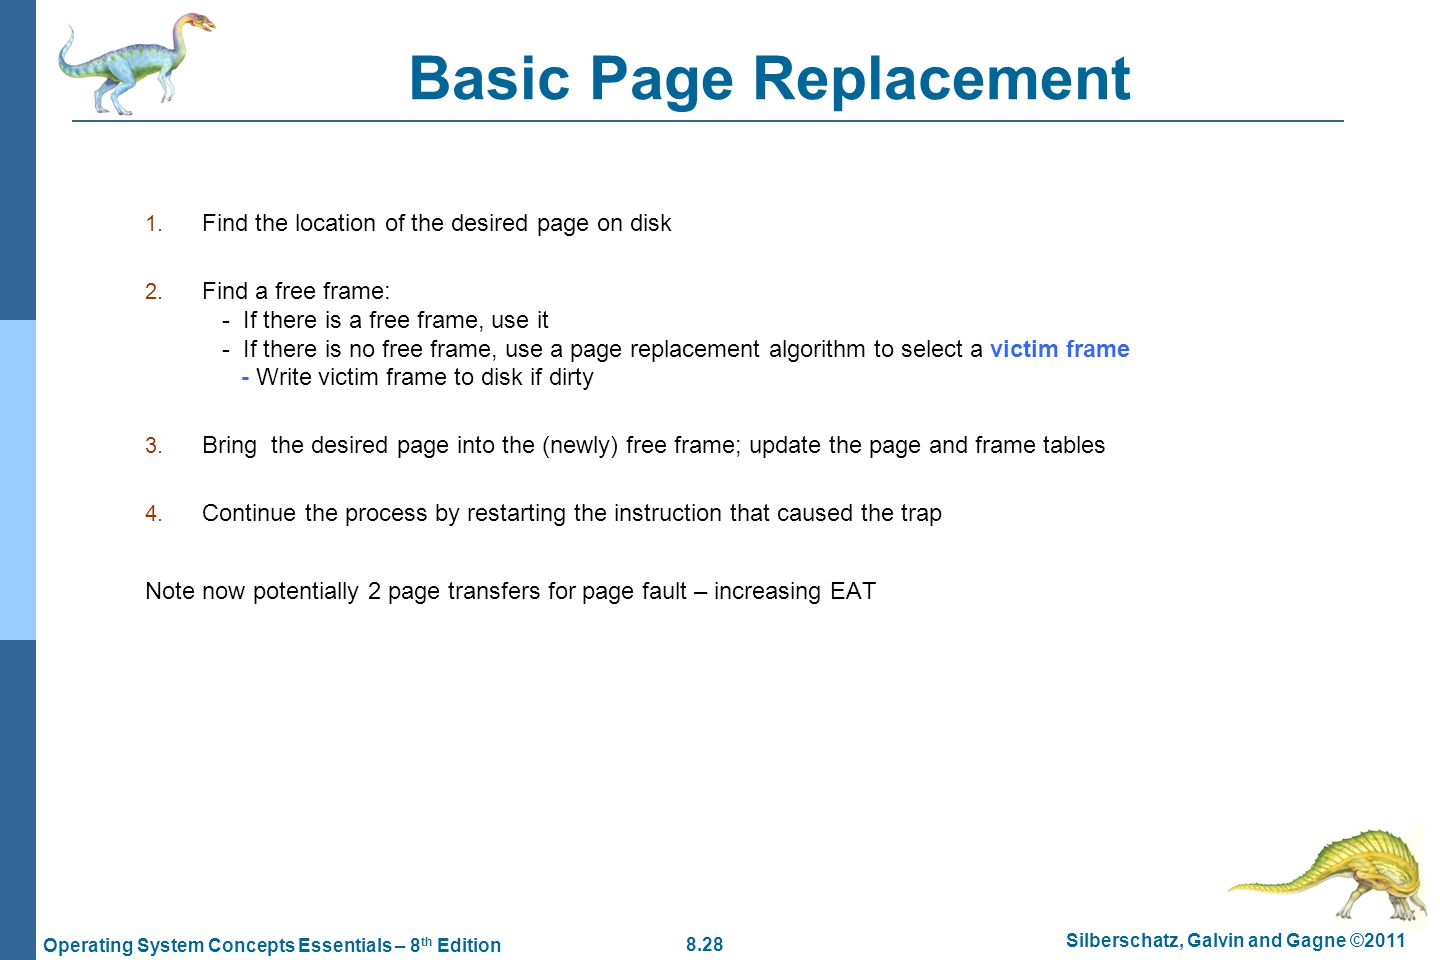 8.28 Silberschatz, Galvin and Gagne ©2011 Operating System Concepts Essentials – 8 th Edition Basic Page Replacement 1. Find the location of the desir